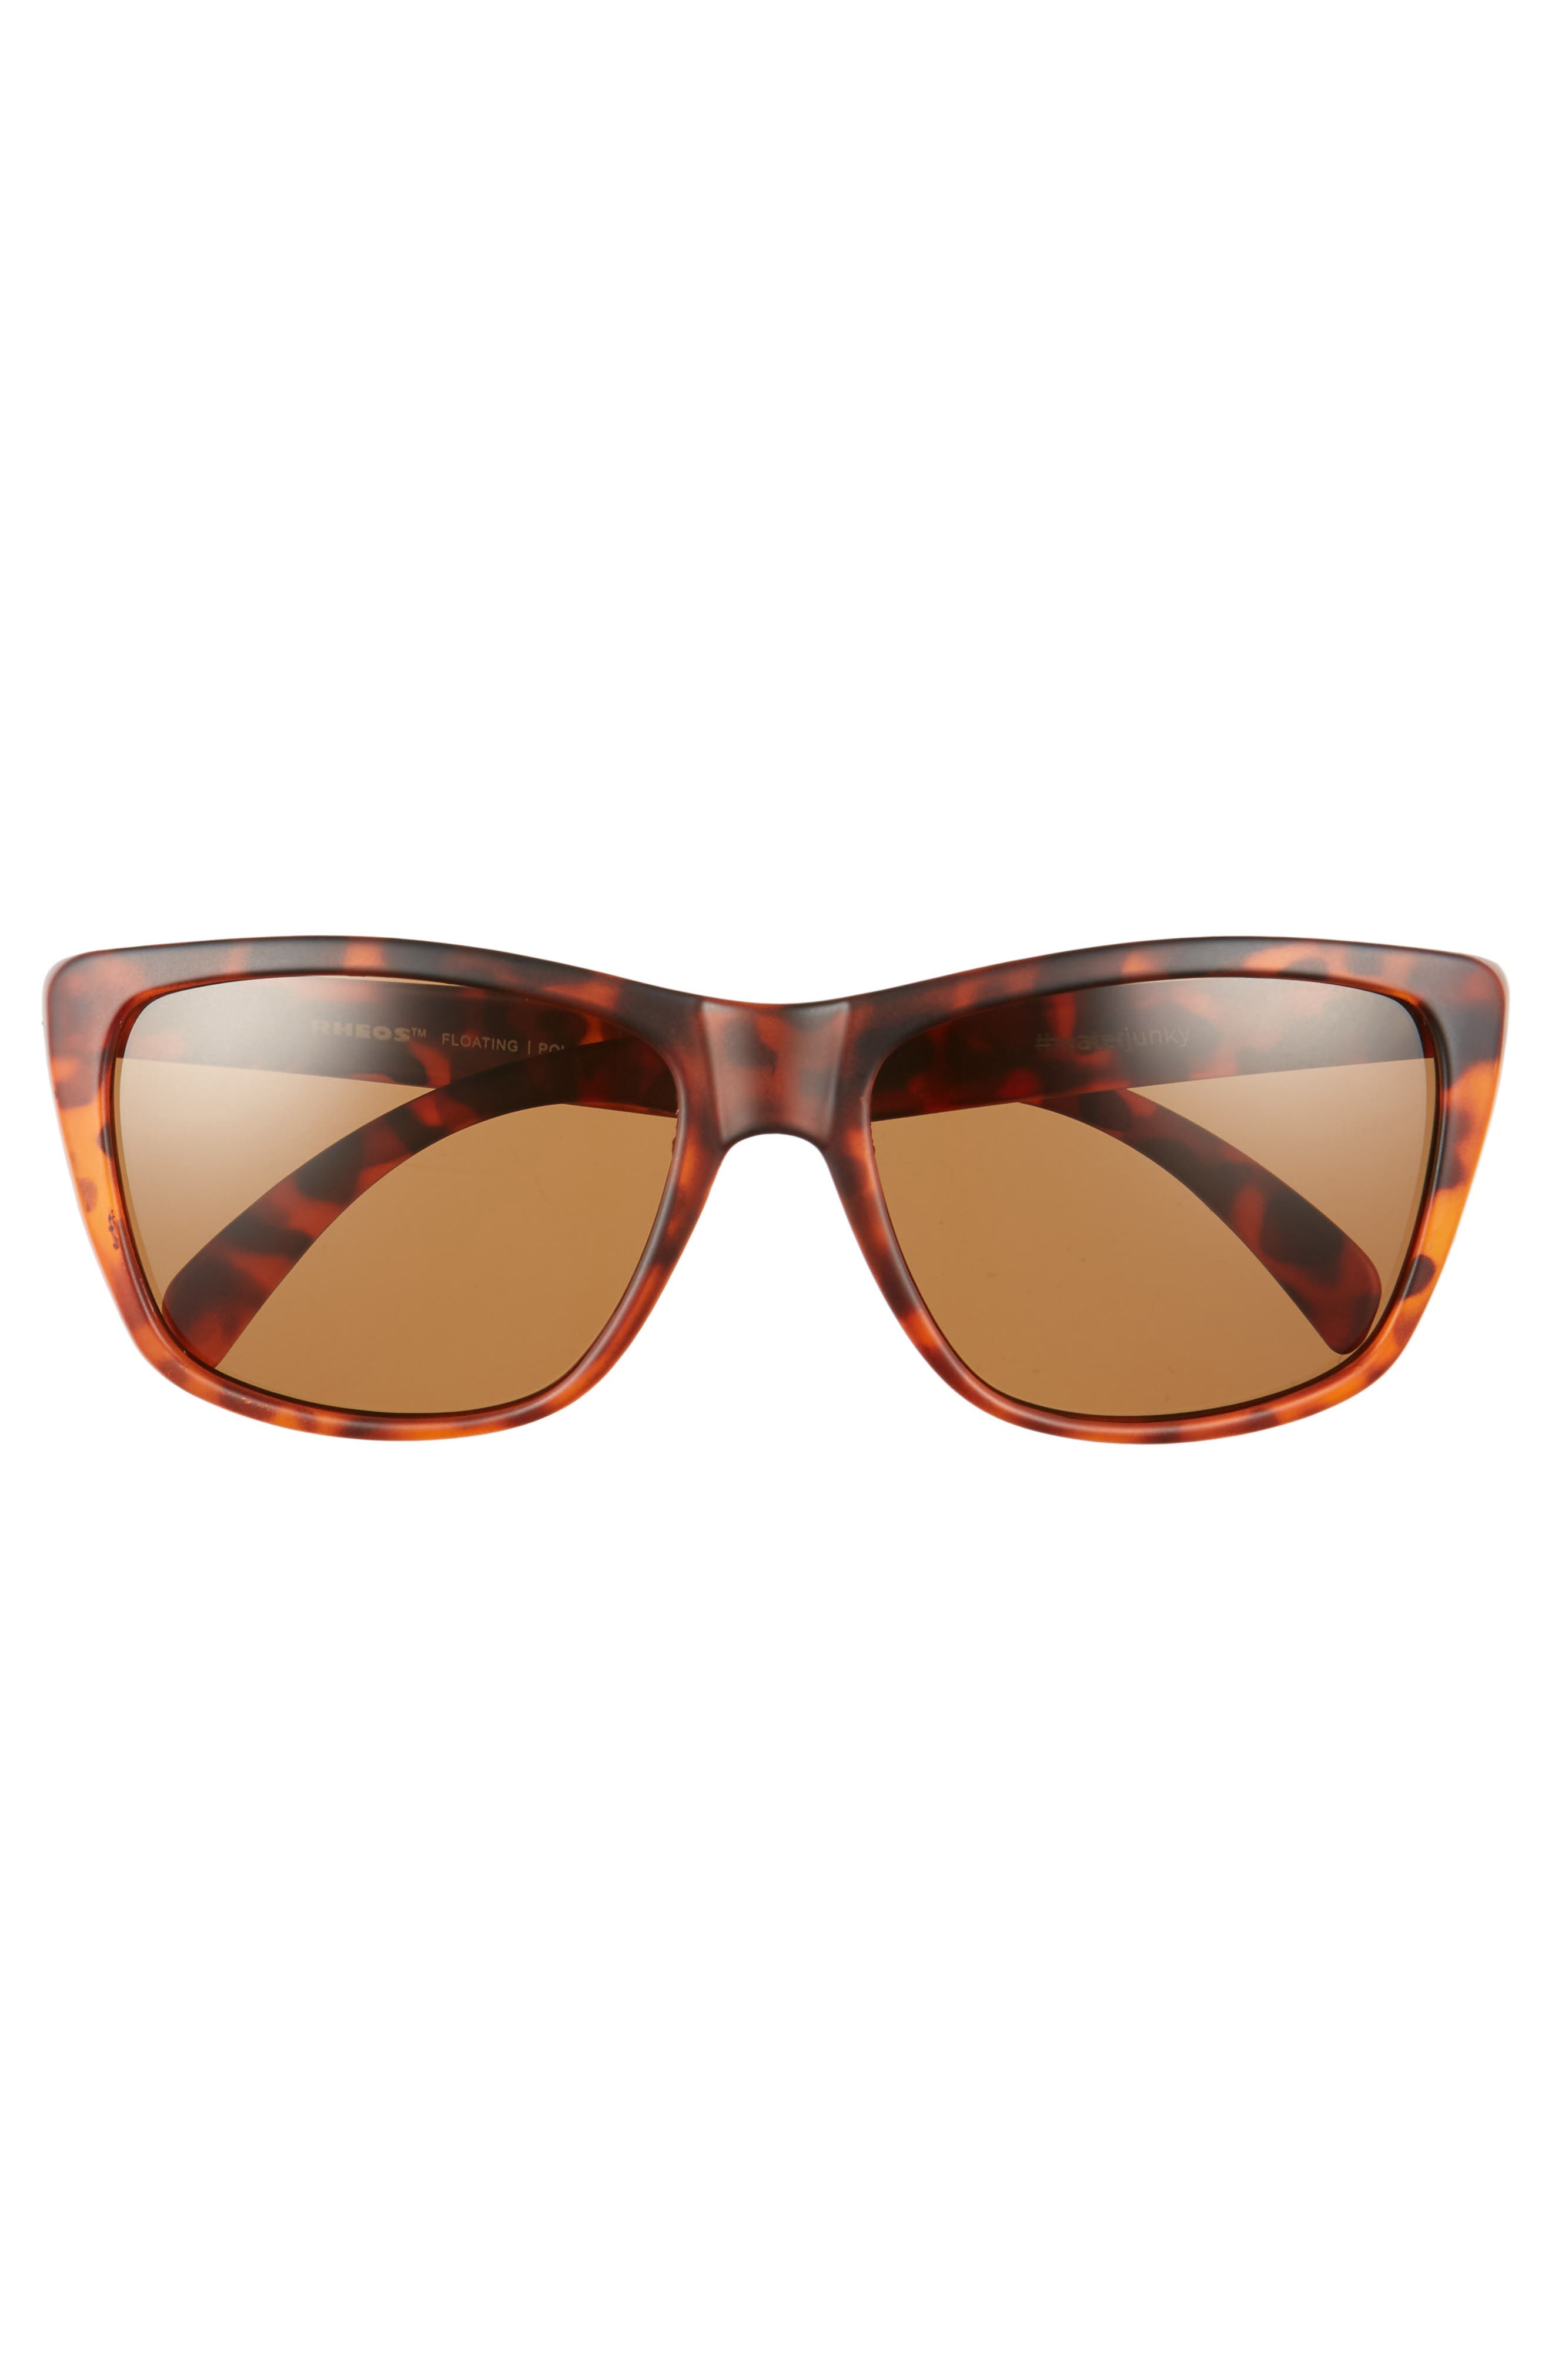 Sapelos Floating 60mm Polarized Sunglasses,                             Alternate thumbnail 2, color,                             Tortoise / Amber